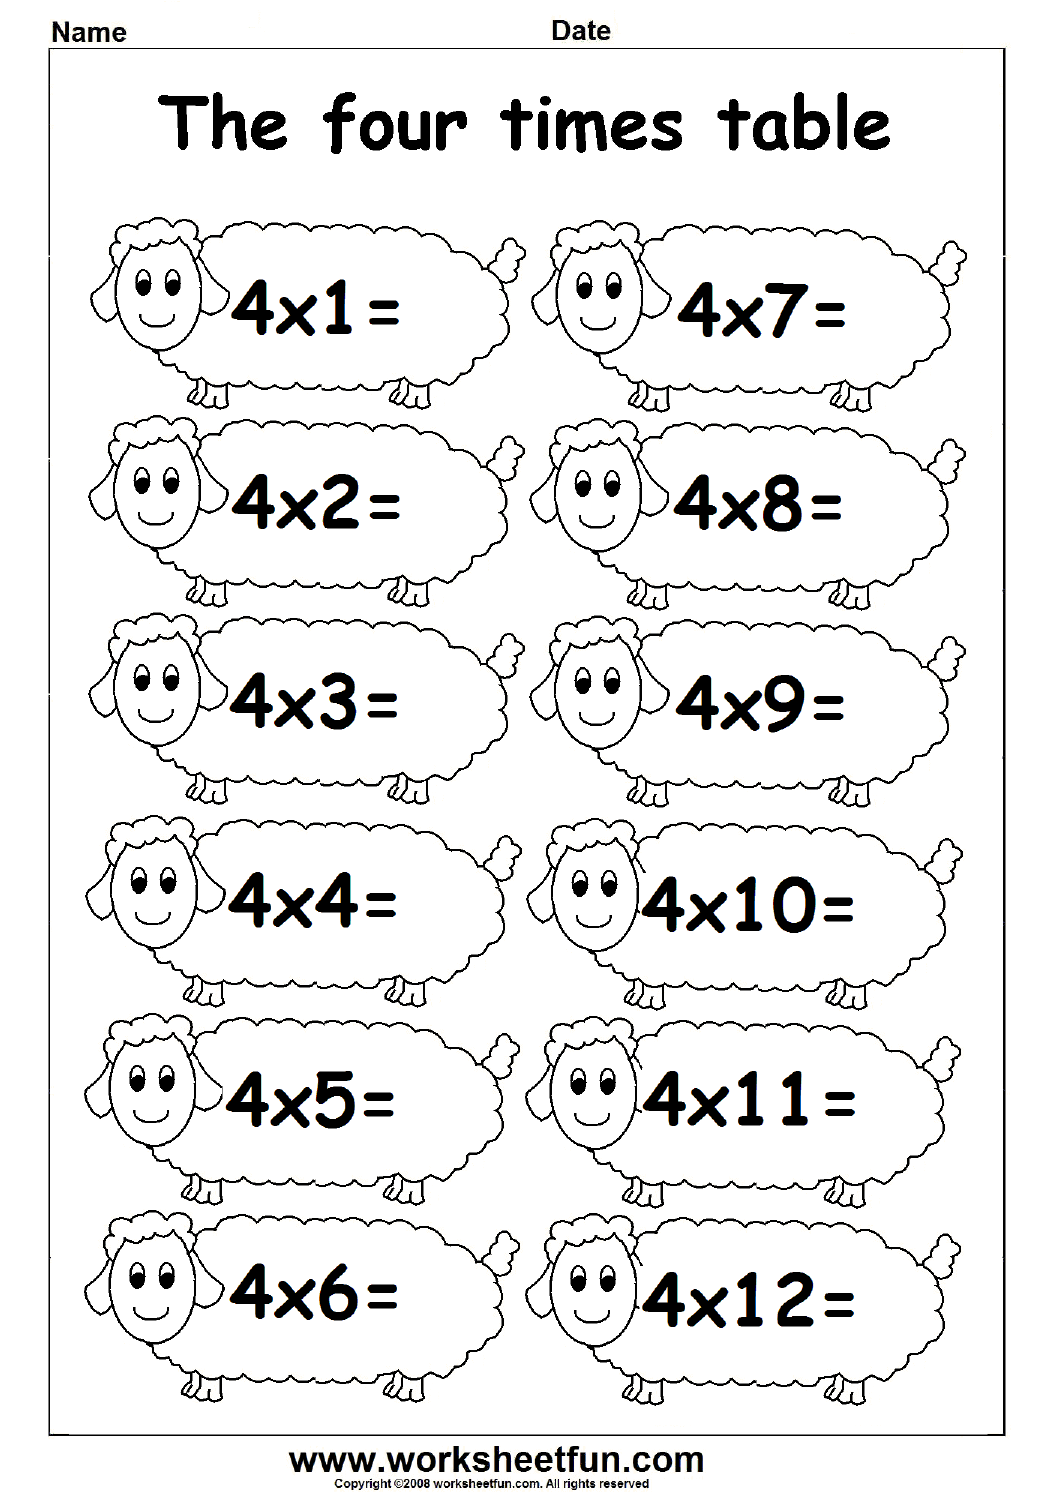 math worksheet : 1000 ideas about times tables worksheets on pinterest  times  : Math Times Tables Worksheet